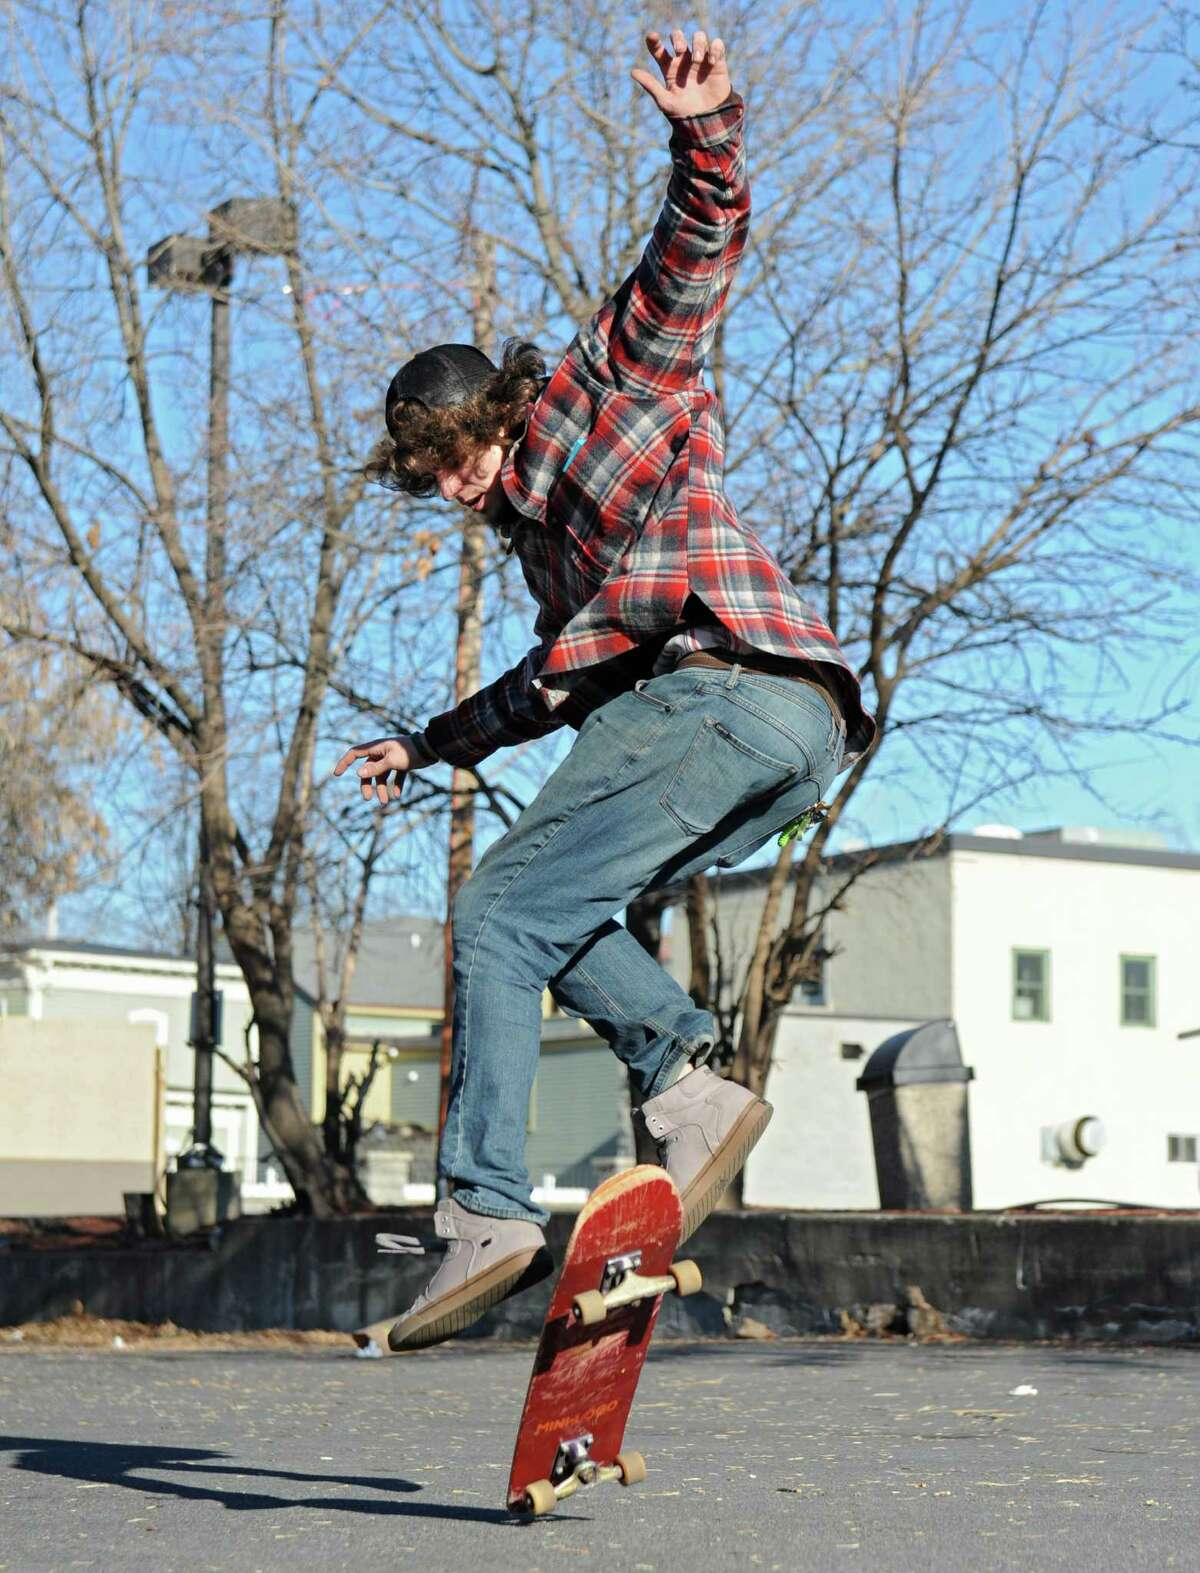 Josh Harris of Schenectady performs a trick on his skateboard in a parking lot behind his home on Monday, Nov. 30, 2015 in Schenectady, N.Y. (Lori Van Buren / Times Union)